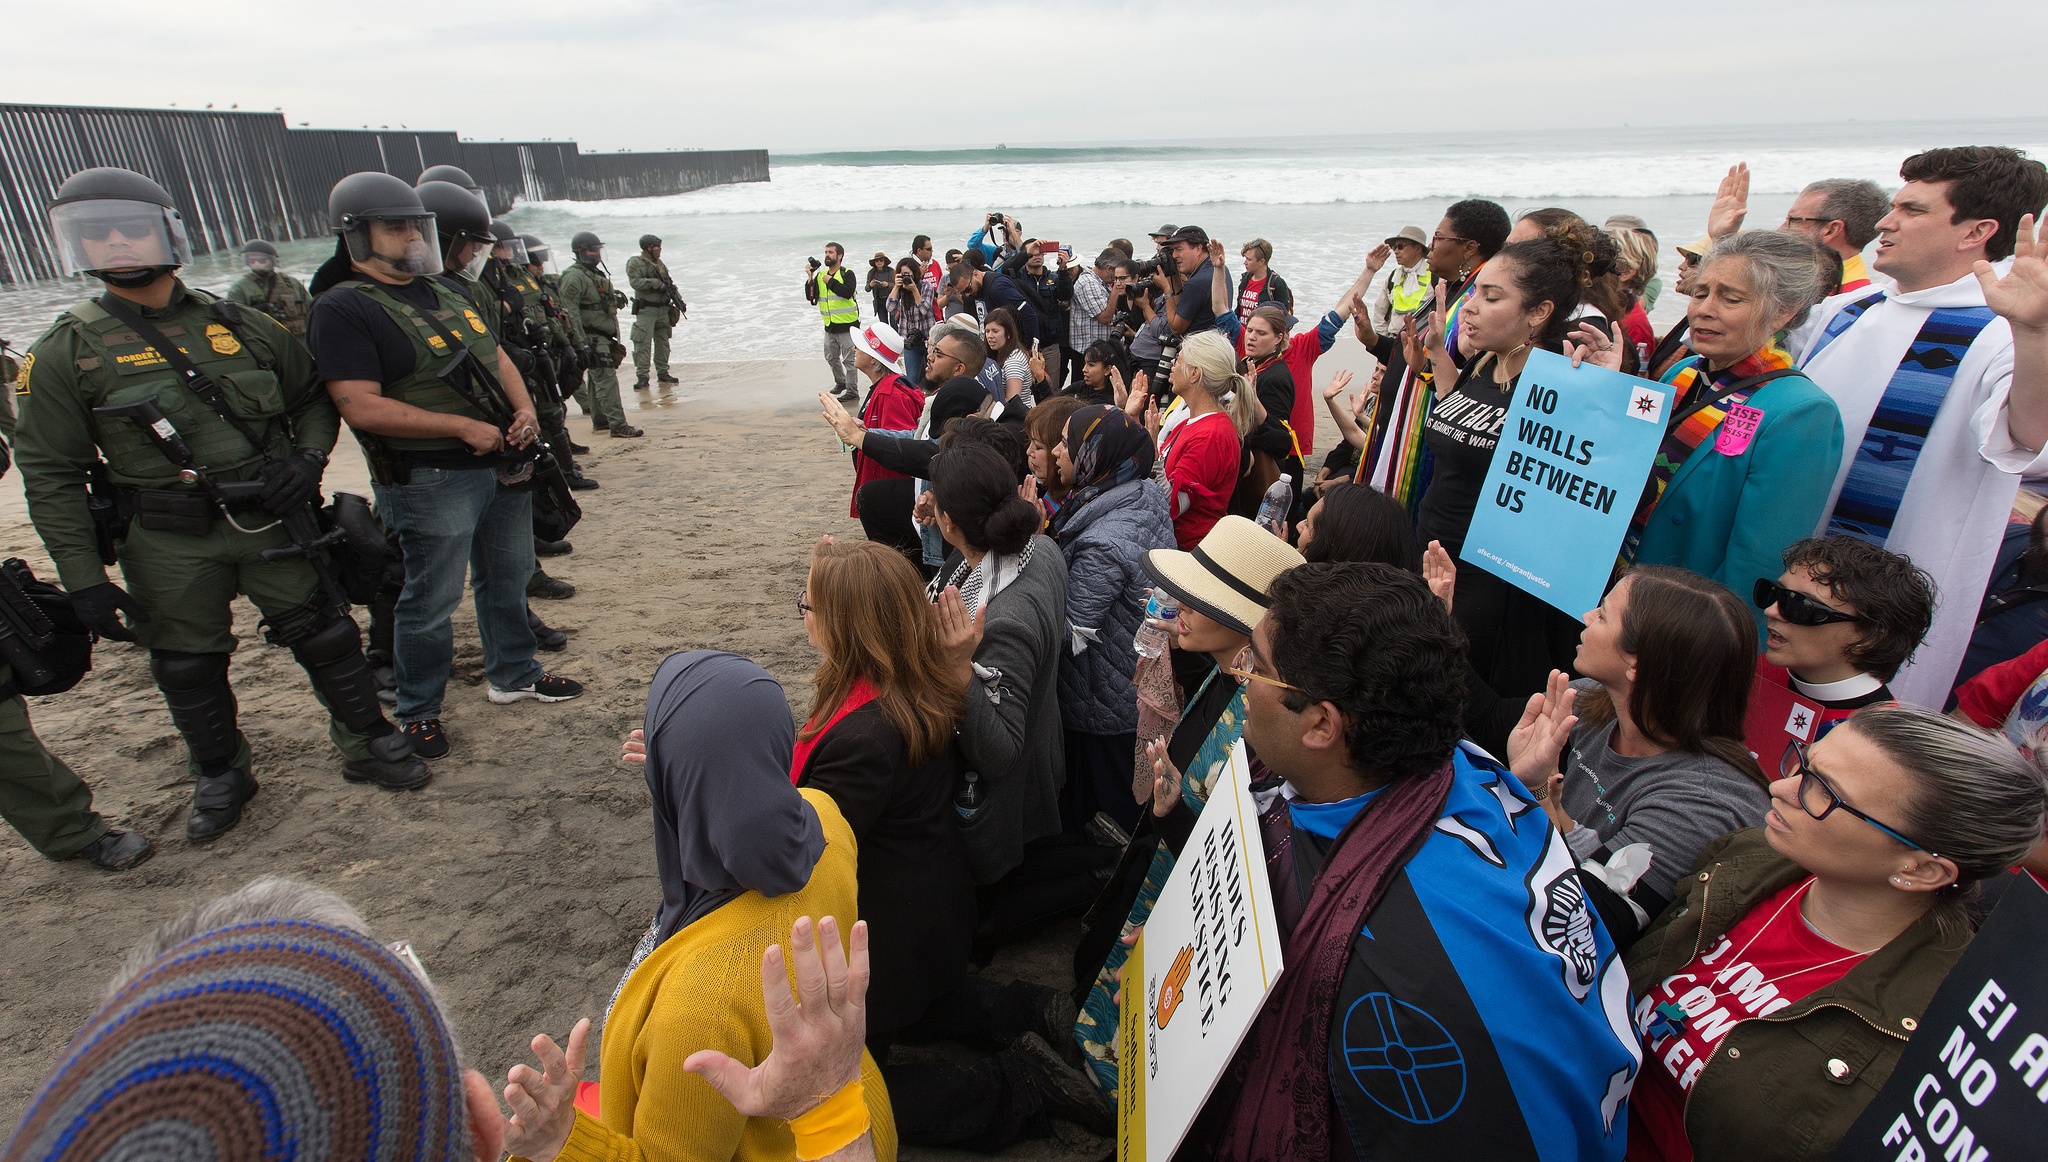 Faith leaders and other supporters of immigrant rights face U.S. Border Patrol agents at the fence between the U.S. and Mexico in San Diego. At bottom right is Emma Escobar of The United Methodist Church's Baltimore-Washington Conference. Photo by Mike DuBose, UMNS.